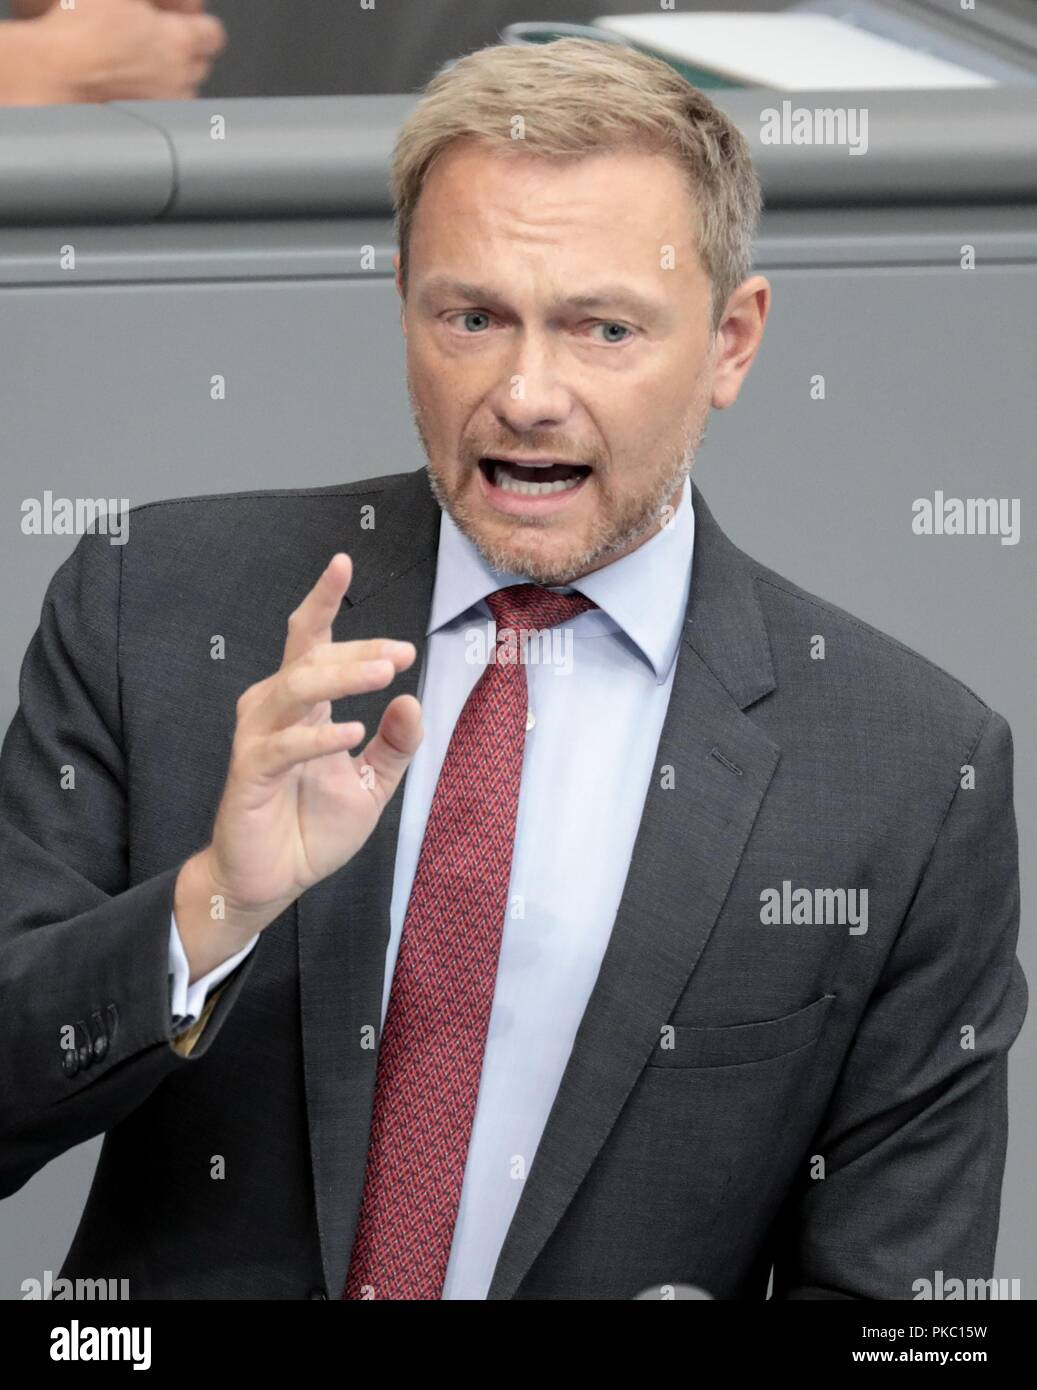 Berlin, Germany. 12th Sep, 2018. Christian Lindner, faction leader and party leader of the Free Democratic Party FDP, speaks at the general debate in the German Bundestag. The main topic of the 48th session of the 19th legislative period is the draft of the Federal Budget 2019 submitted by the Federal Government and the Federal Finance Plan 2018 to 2022 with the general debate on the budget of the Federal Chancellery. Credit: dpa picture alliance/Alamy Live News - Stock Image